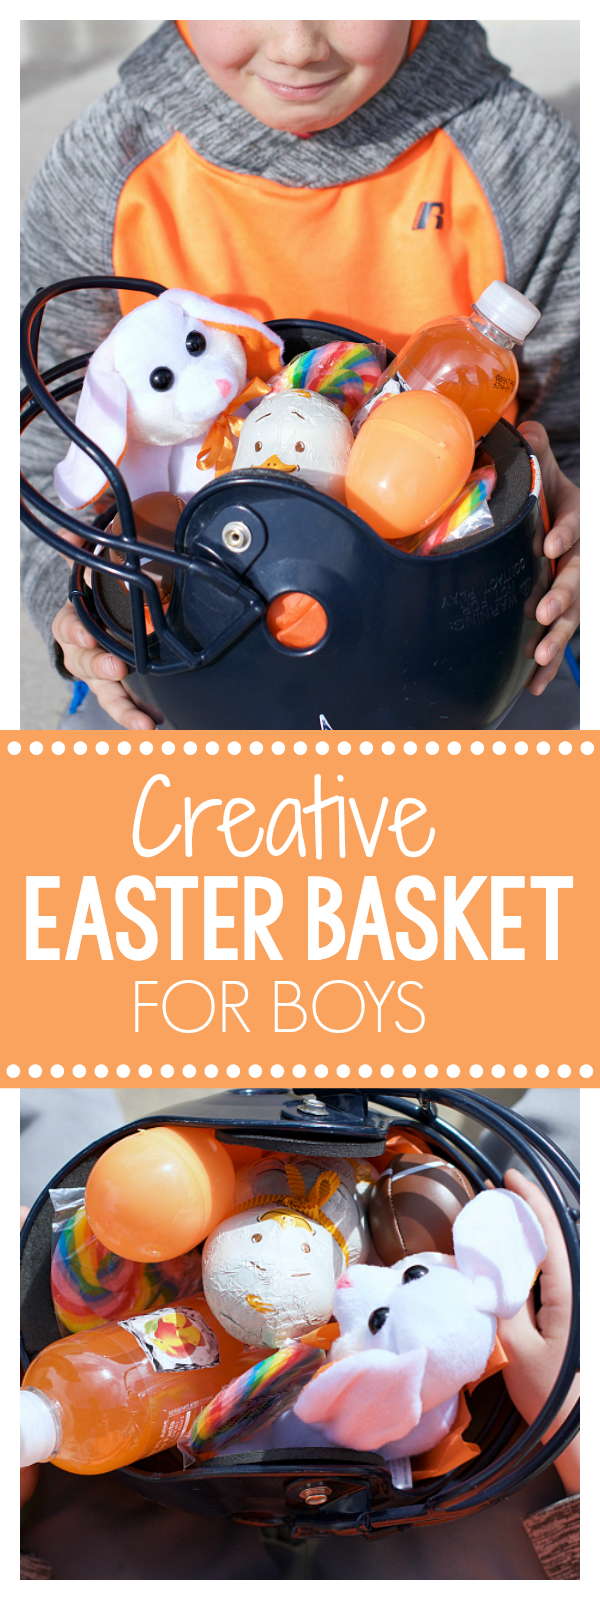 Creative Easter Basket Ideas for Boys